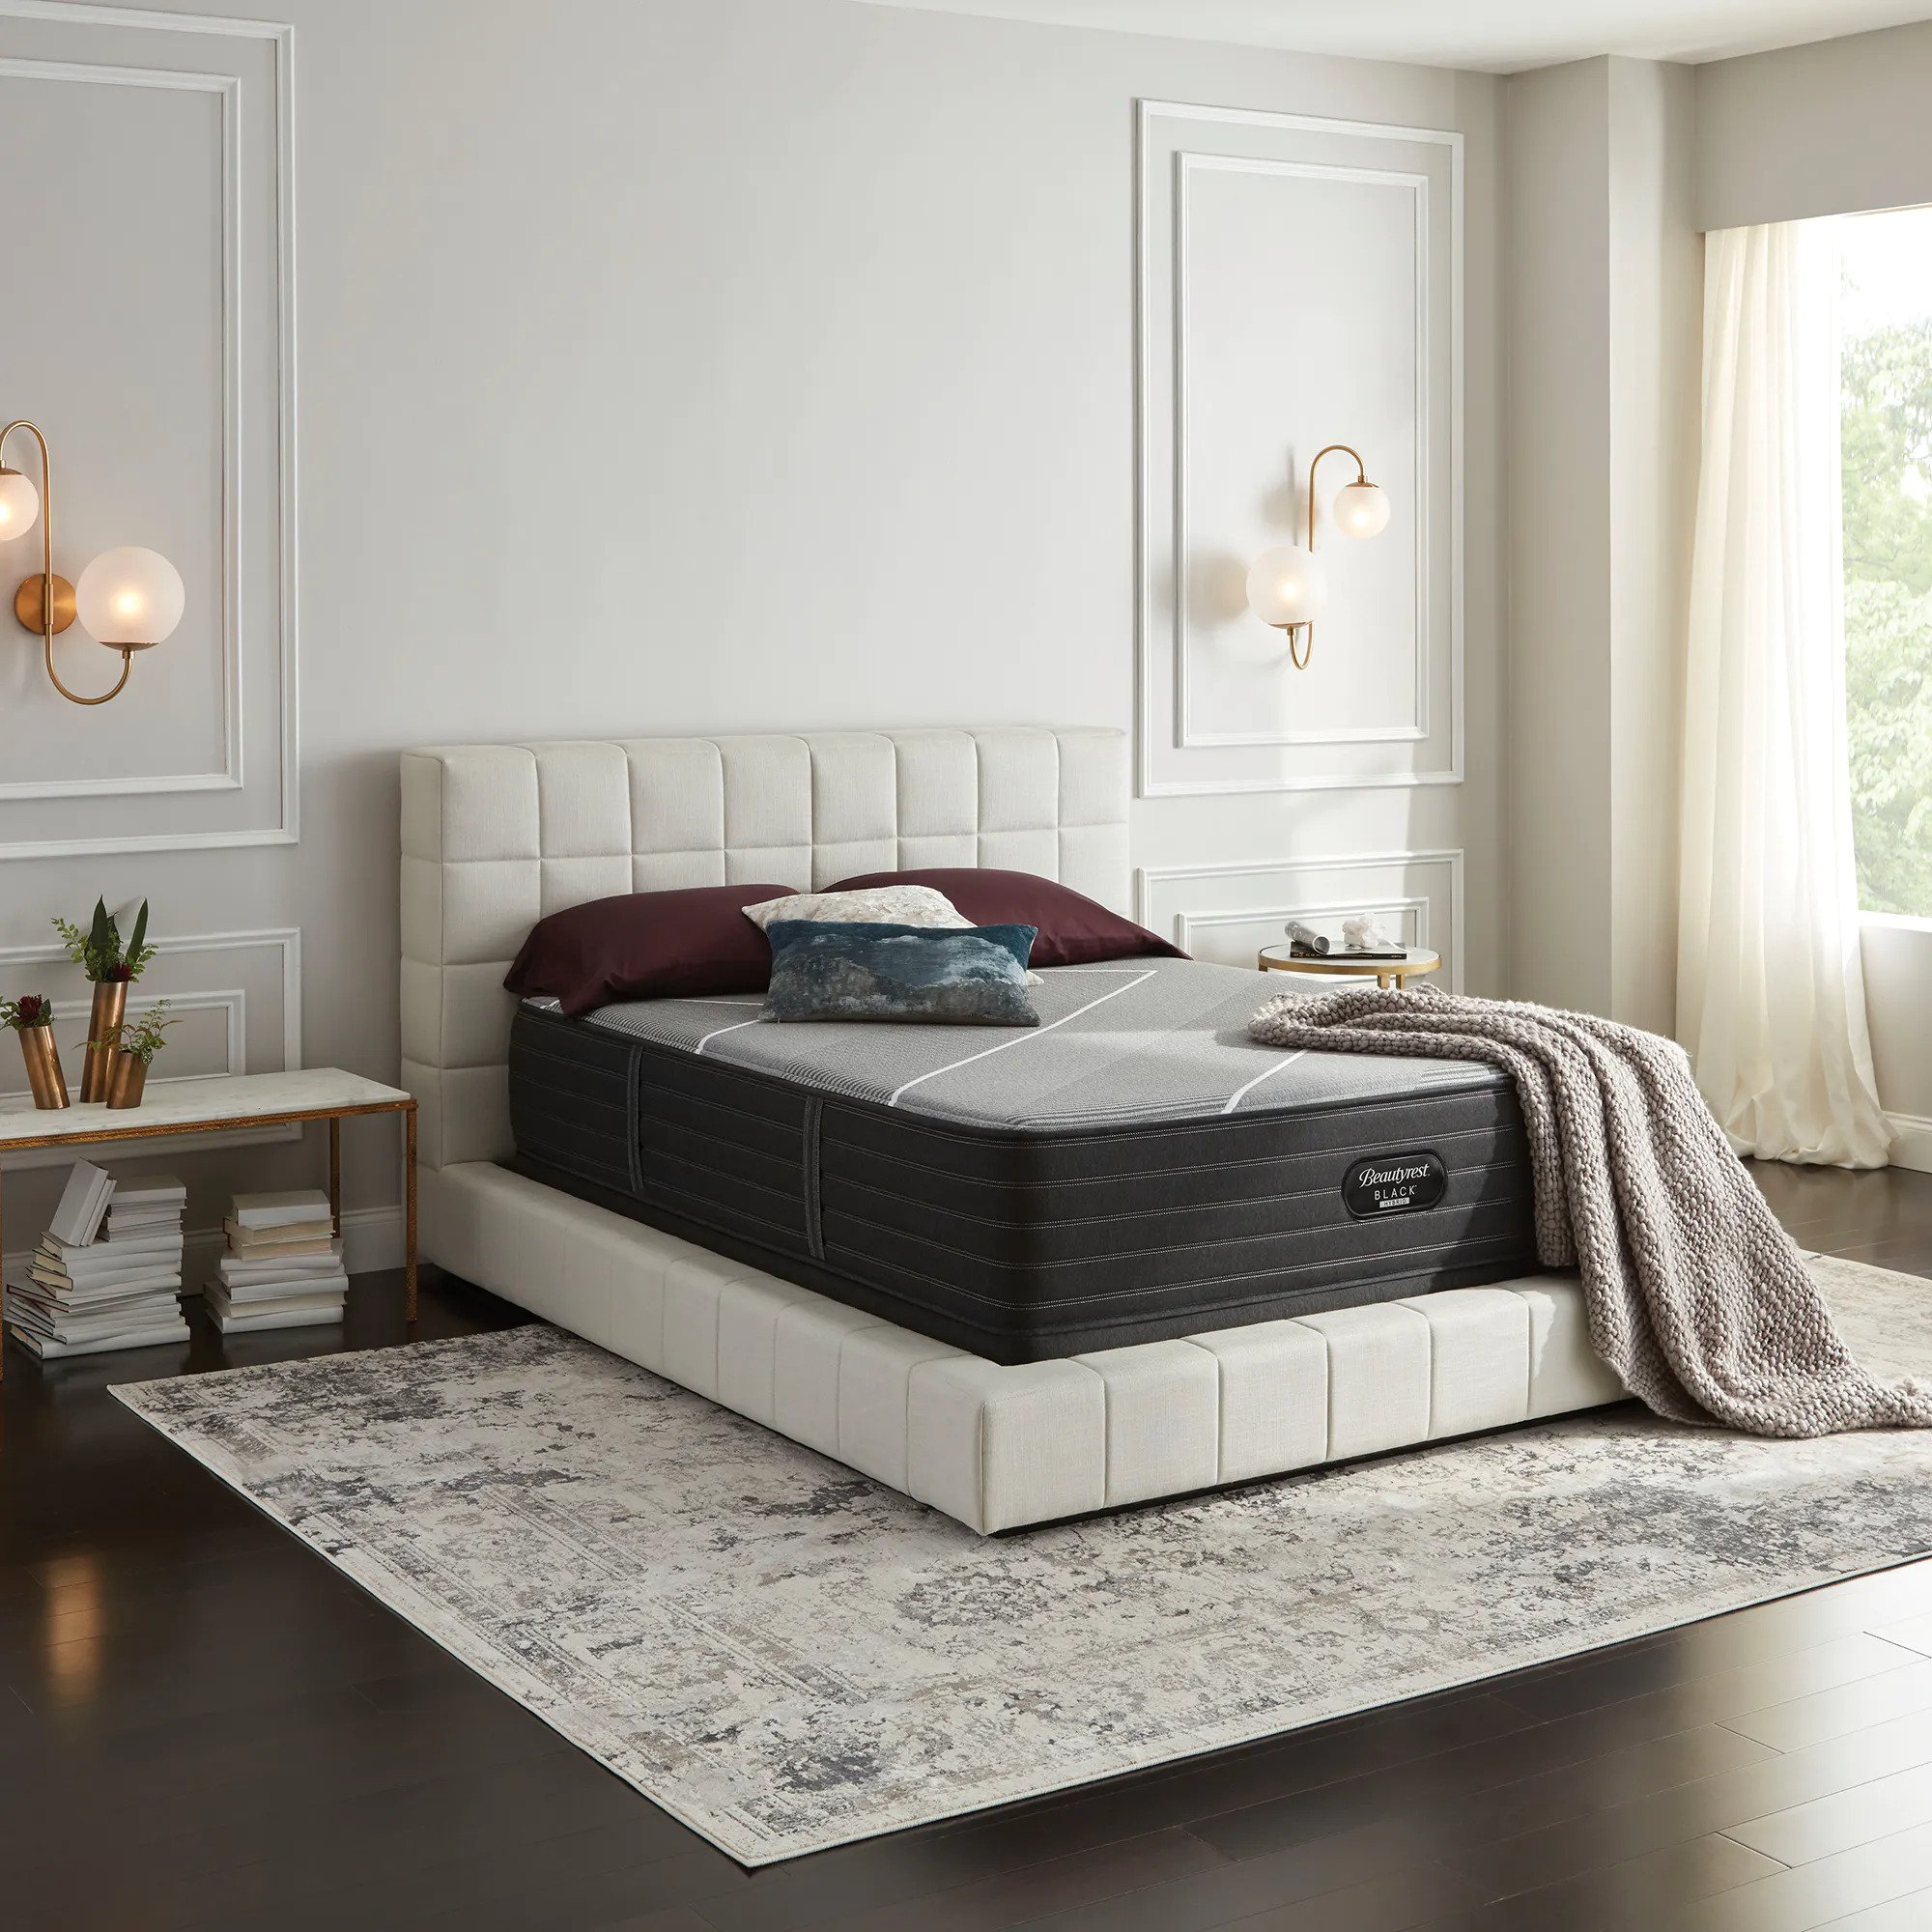 BeautyRest Black Hybrid Mattress